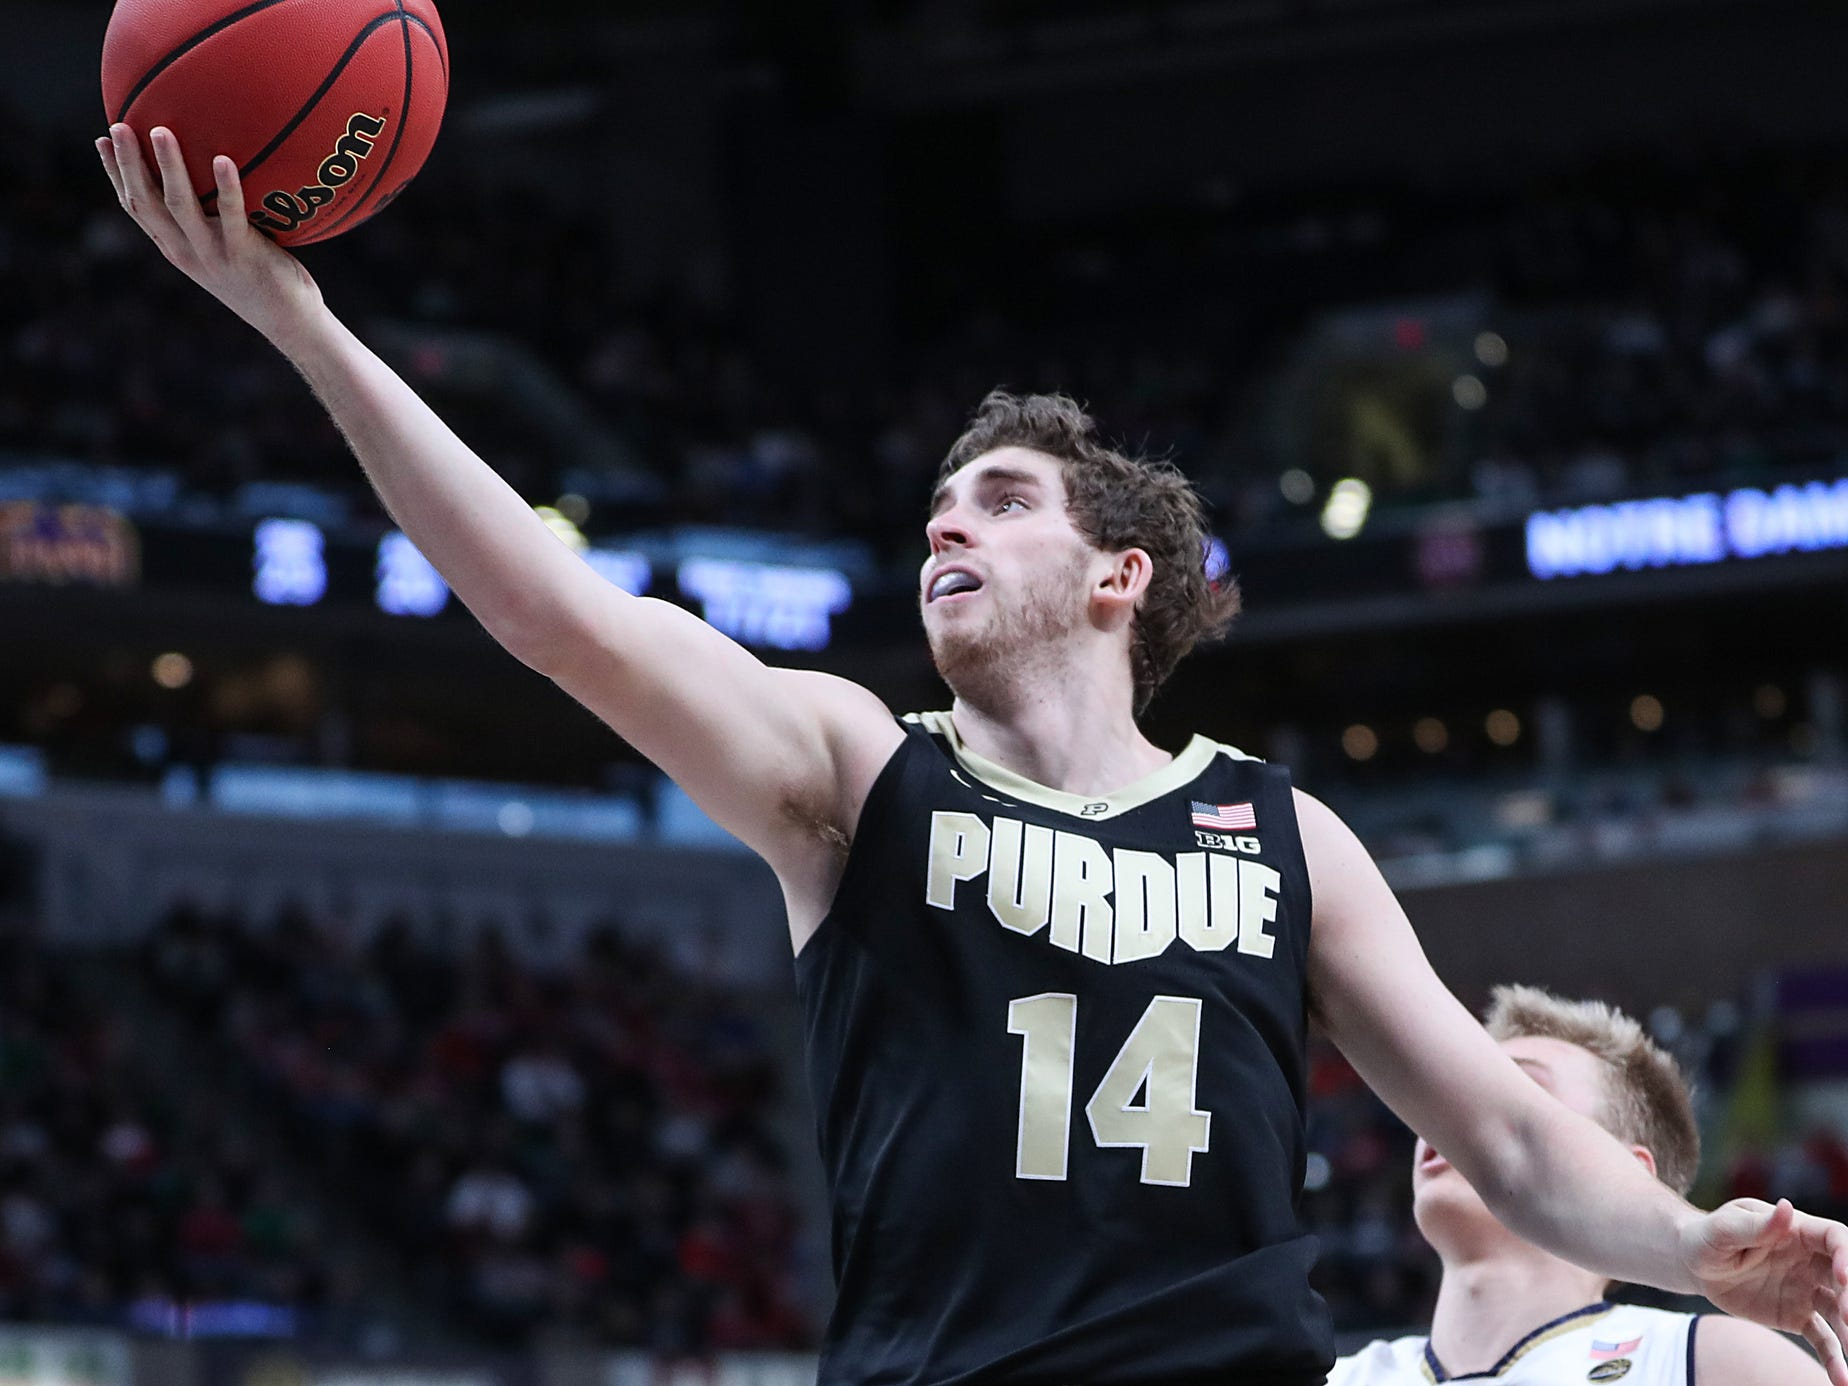 Purdue Boilermakers guard Ryan Cline (14) takes the ball to the hoop in the second half of the Crossroads Classic game between Purdue and Notre Dame at Bankers Life Fieldhouse in Indiananpolis, Saturday, Dec. 15, 2018. Notre Dame won, 88-80.